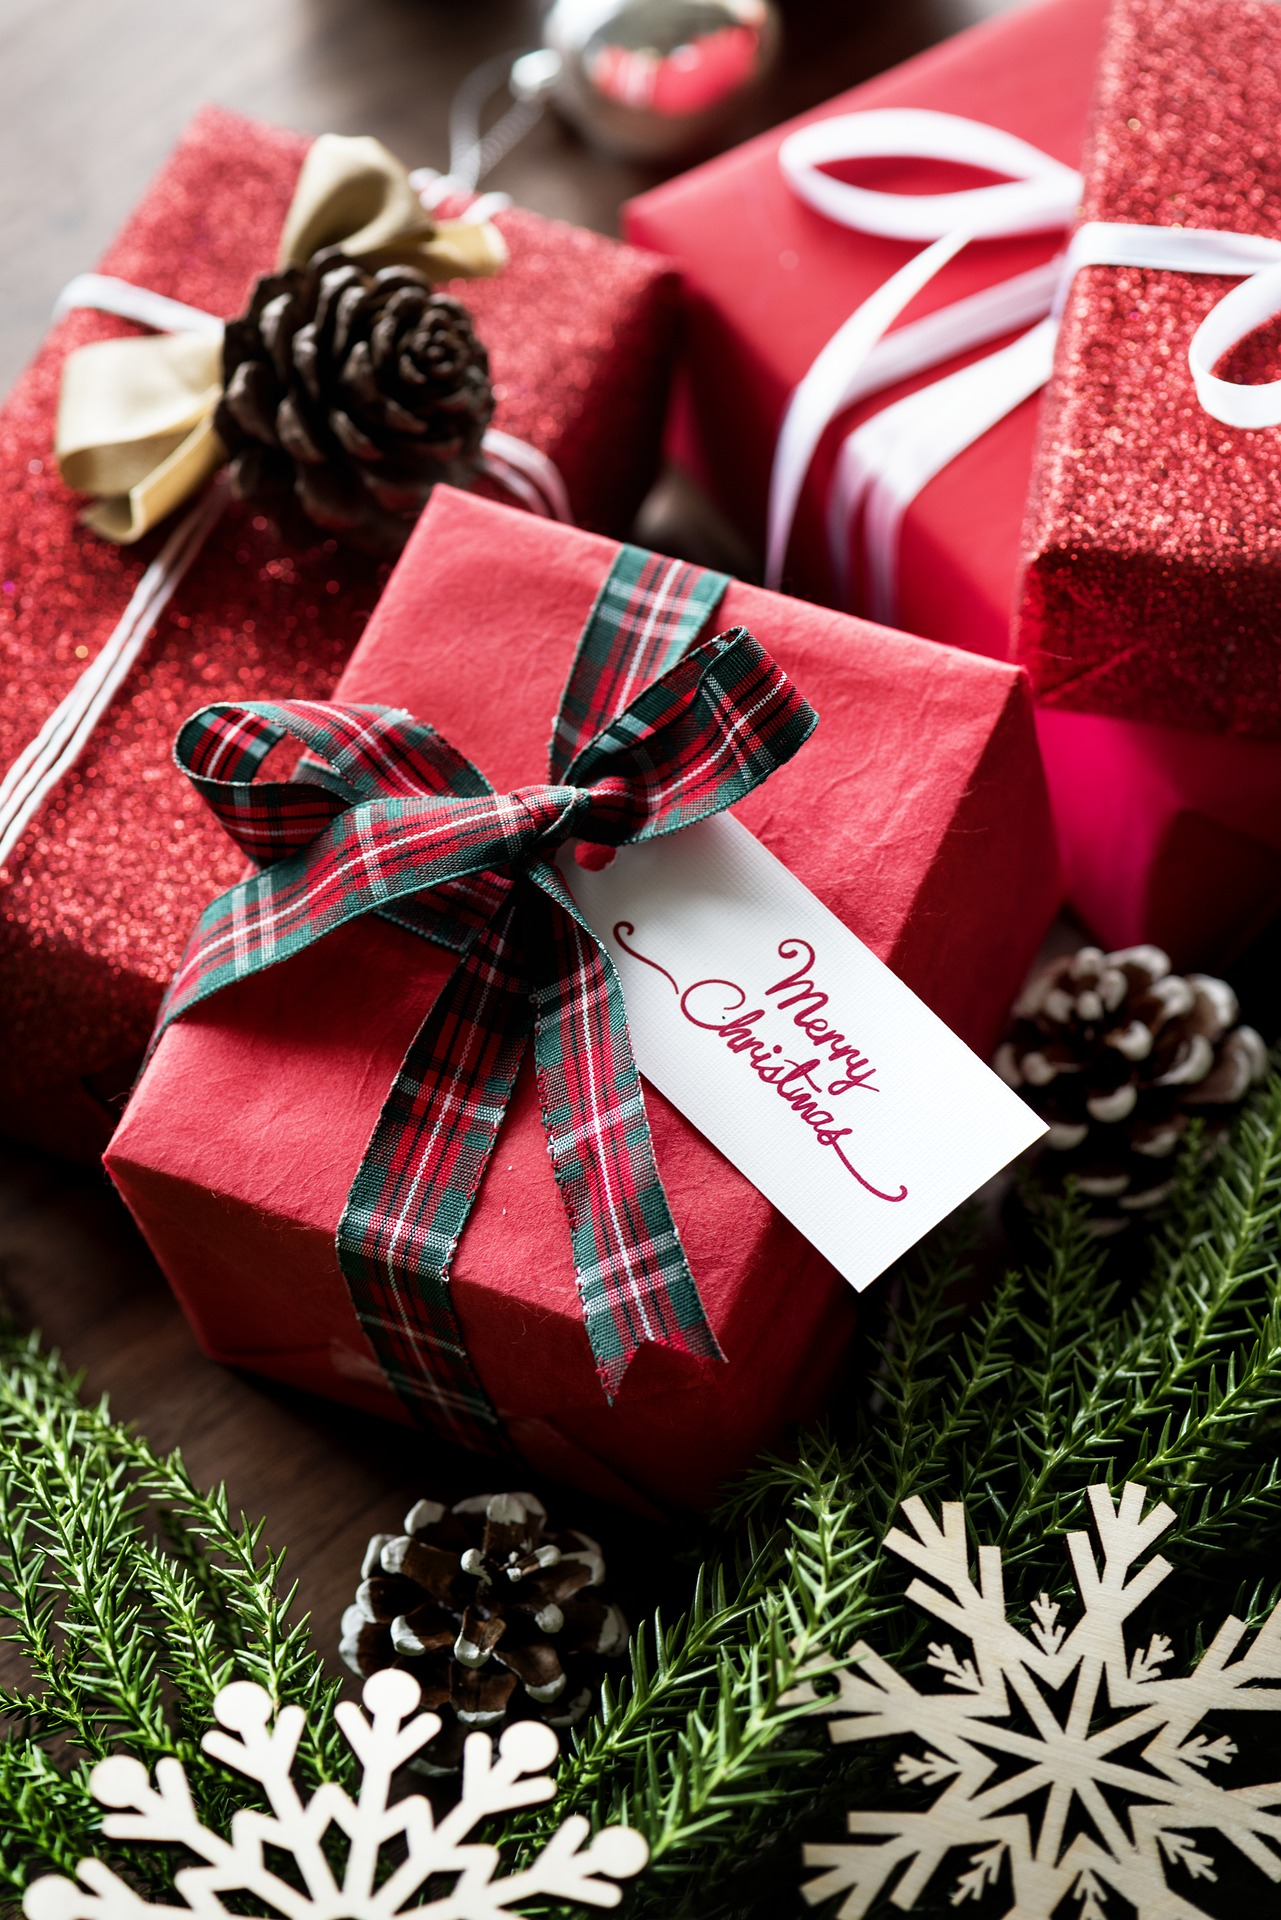 Christmas Gift Wrapping Tips - Use Different Coloured Ribbons for Different Recipients